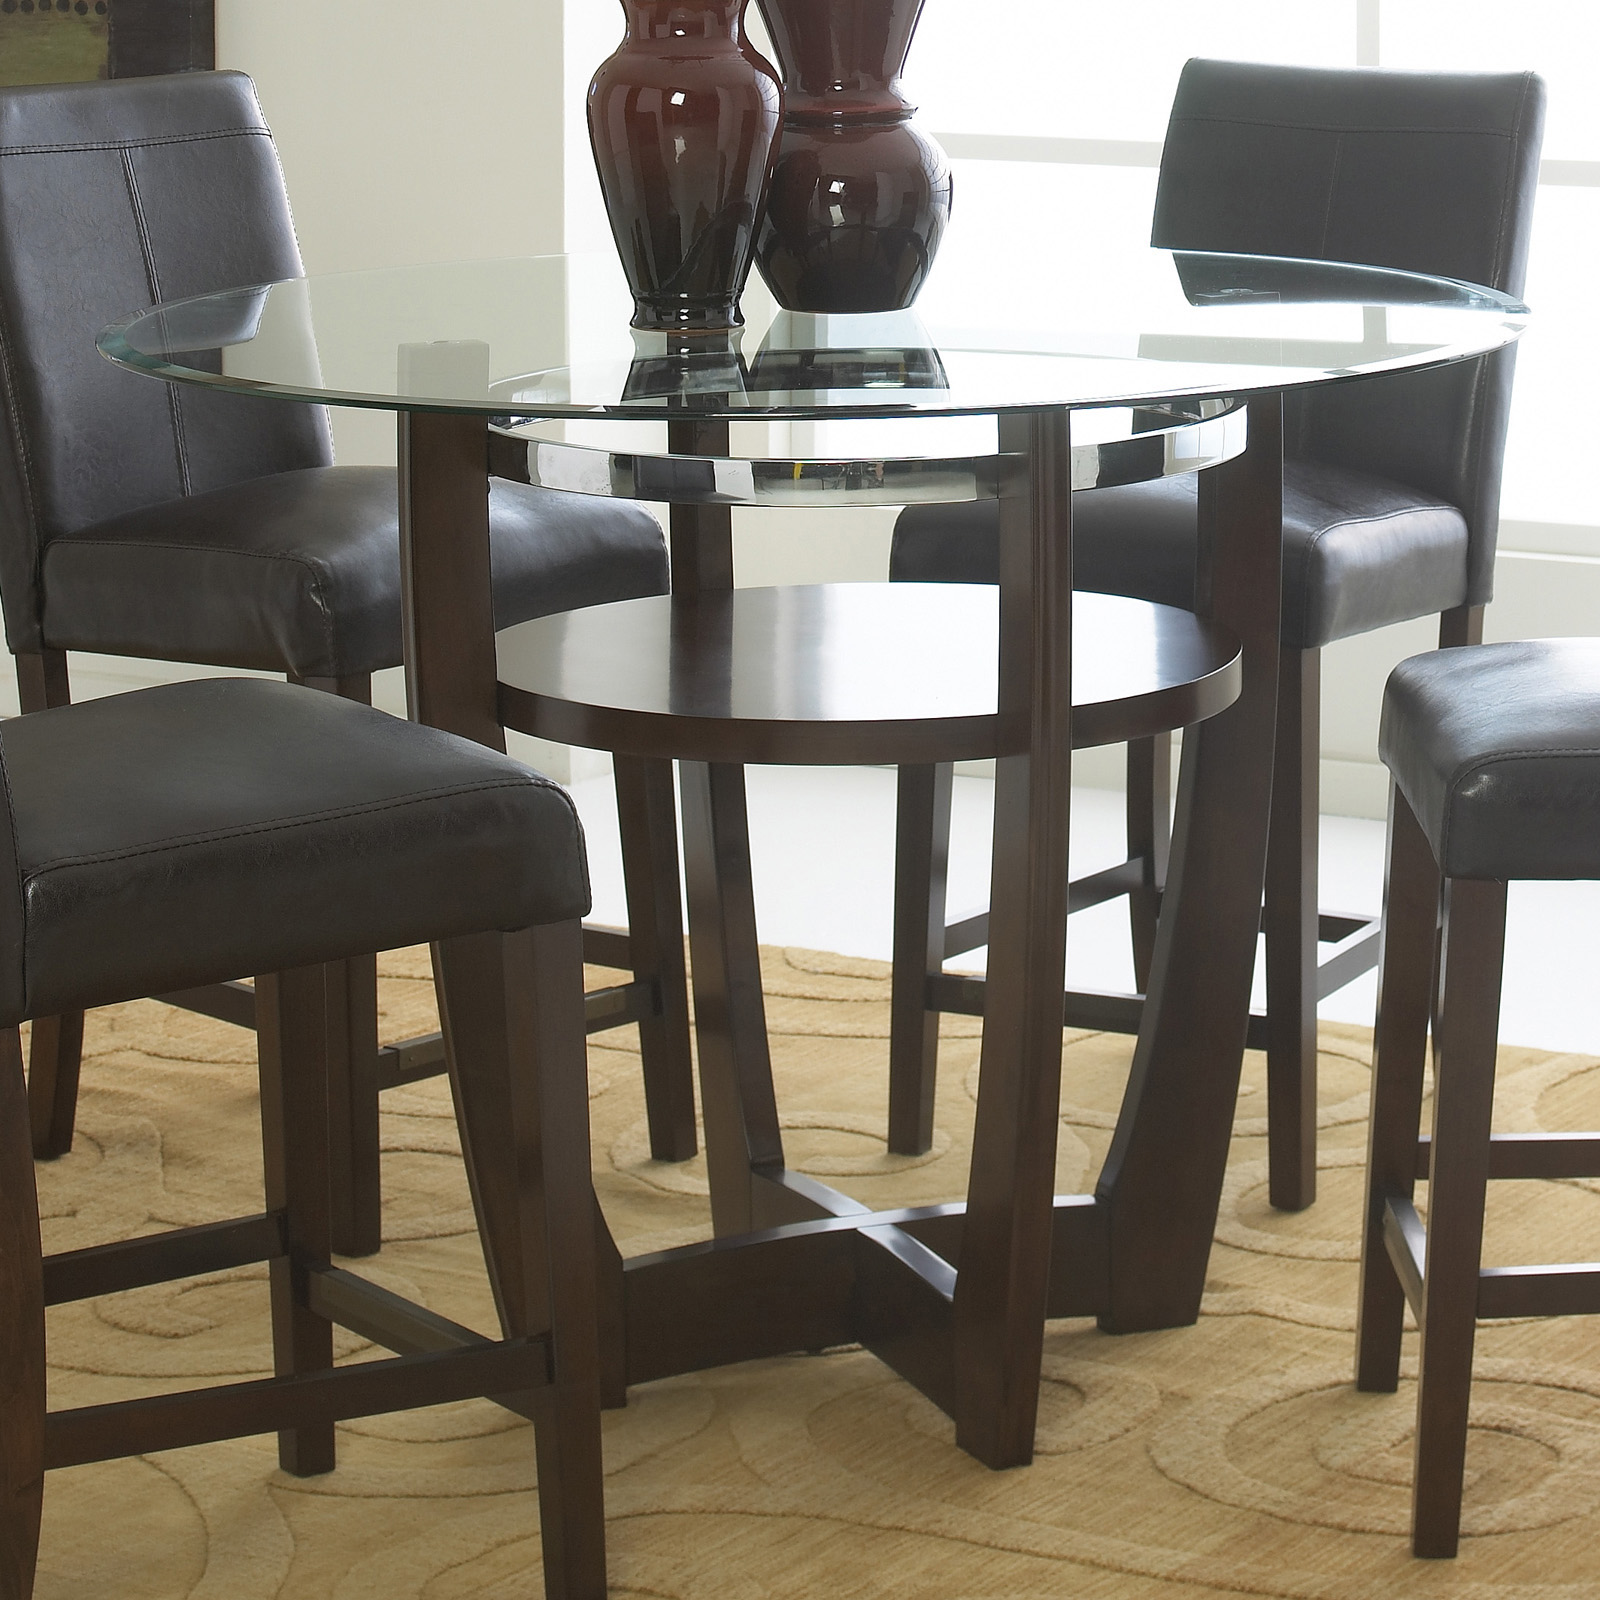 Counter Height Glass Dining Table Set : ... Furniture Apollo Counter Height Glass Top Dining Table at Hayneedle